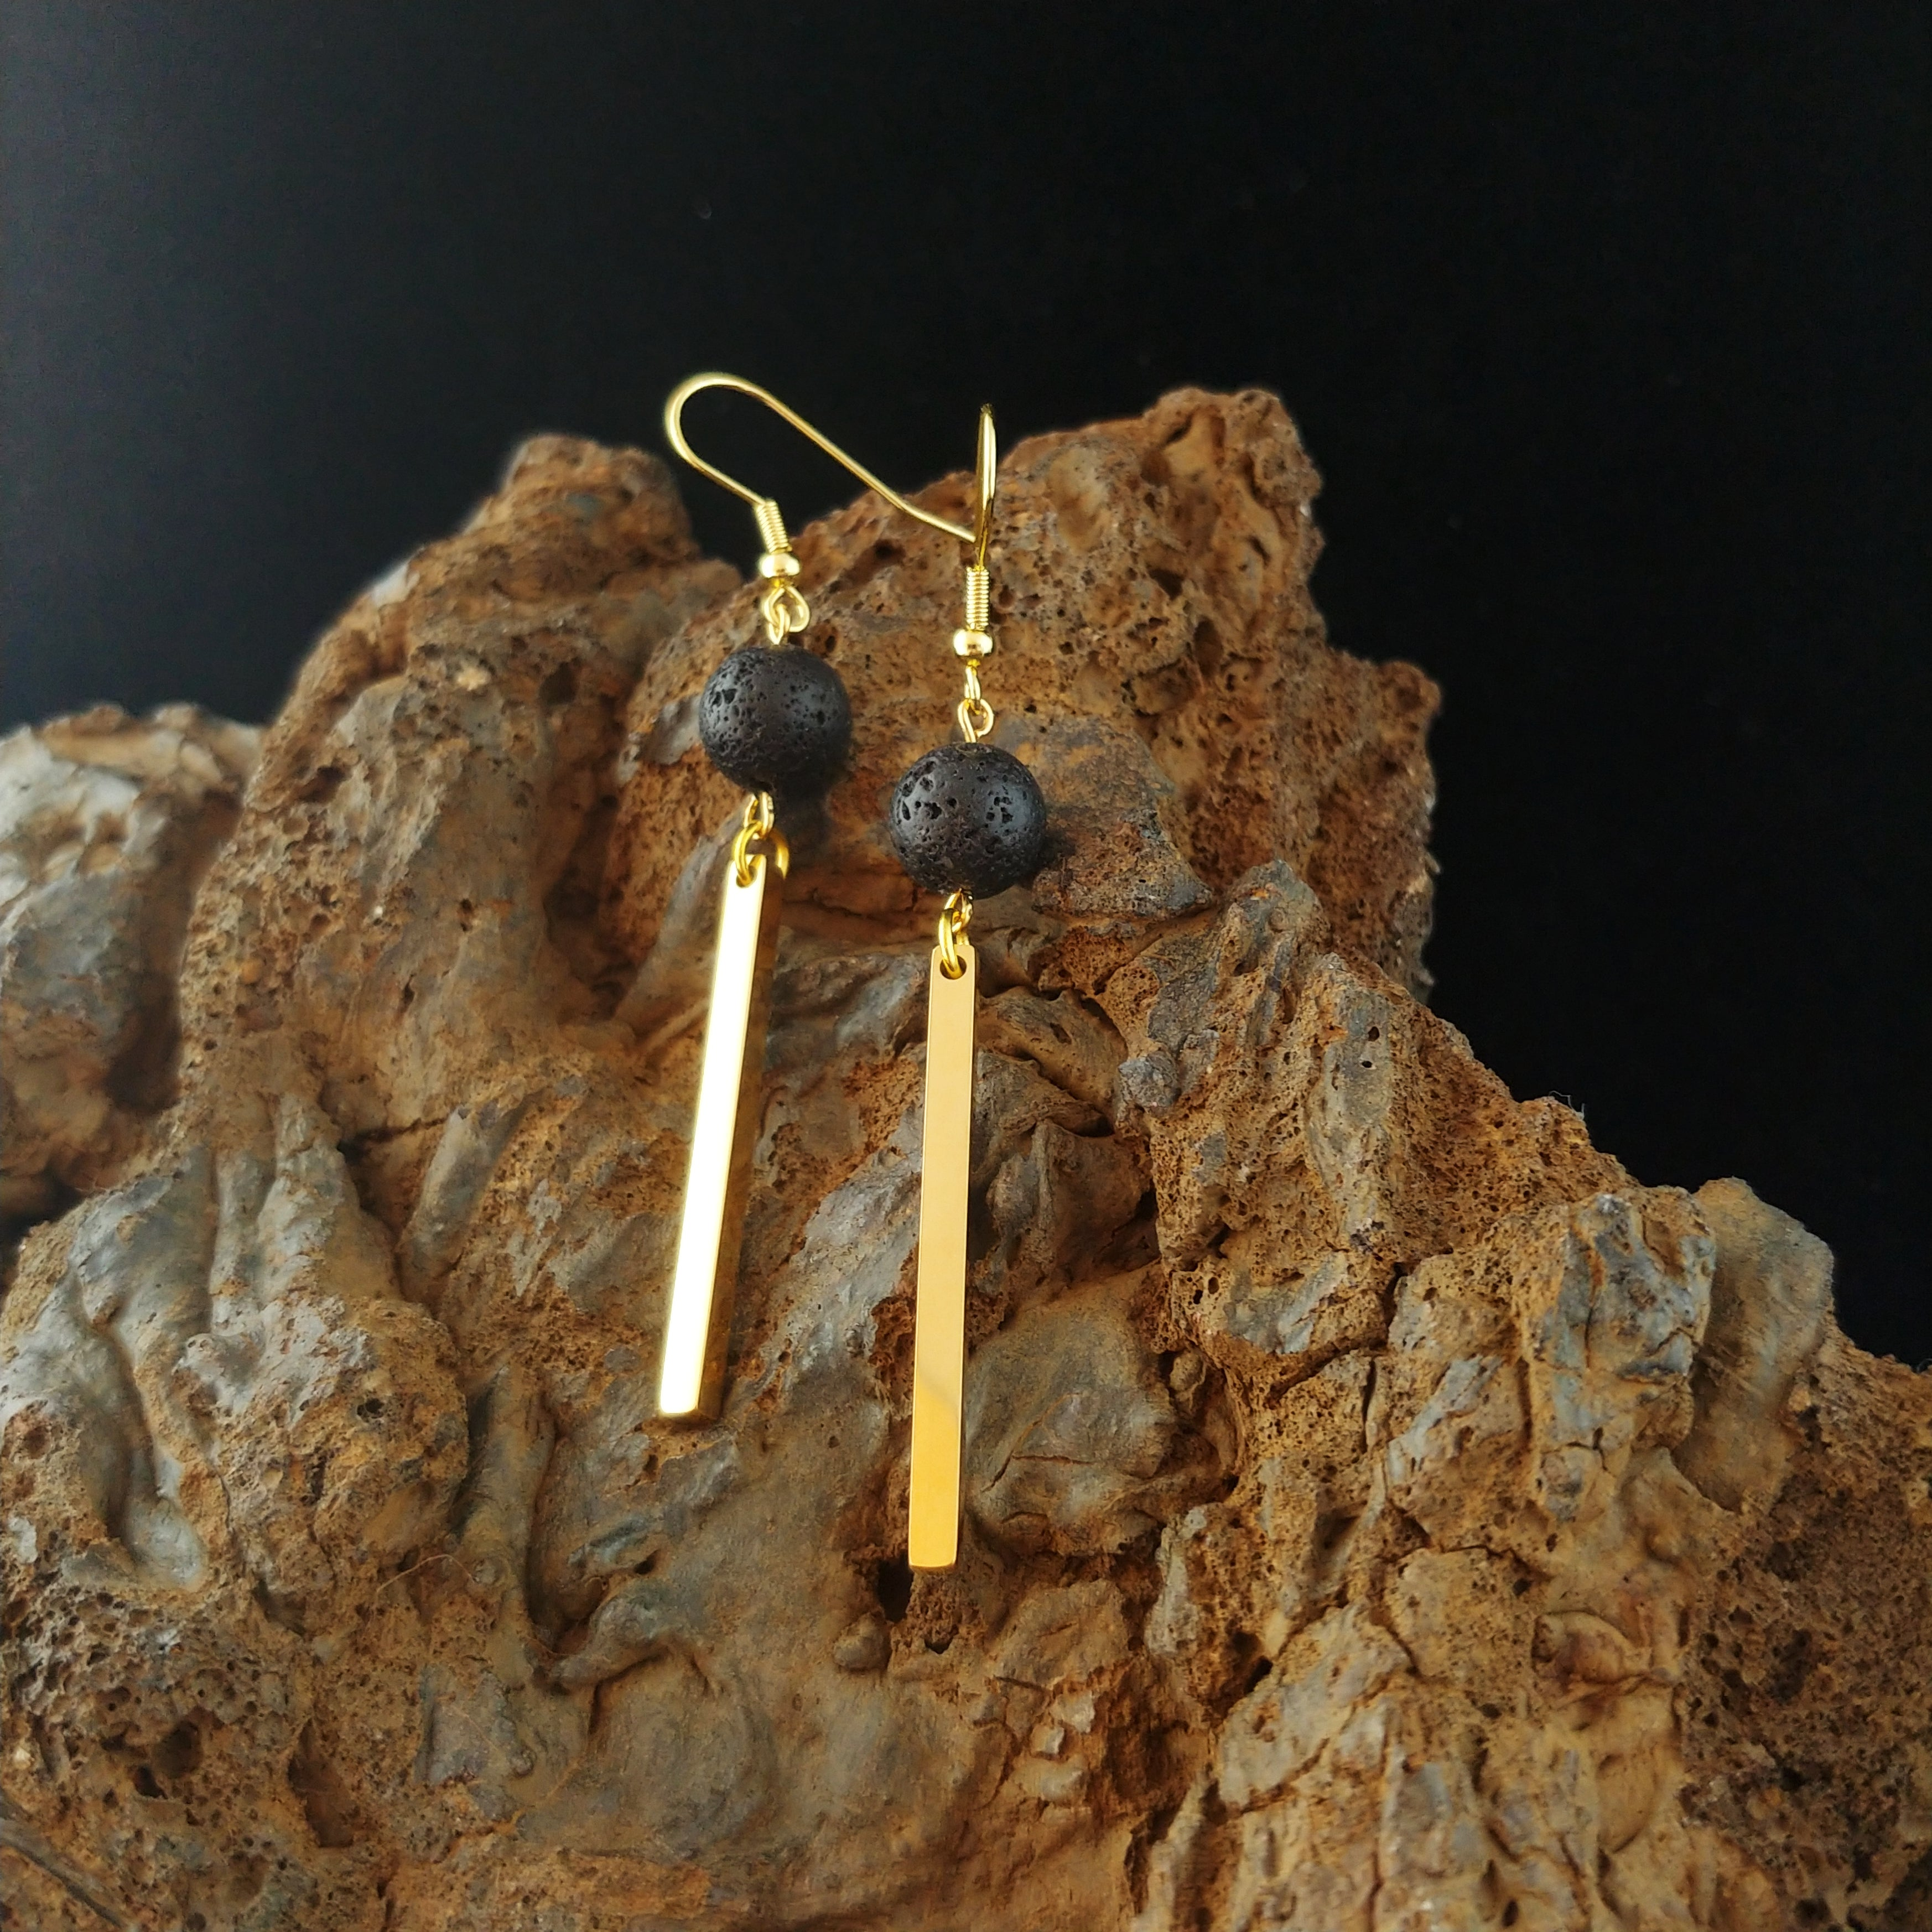 The Lava and Golden Bar Jewelry Set - Set of Earrings and Necklace with Golden Stainless Steel Bar and Lava - Monolith Series - Iceland